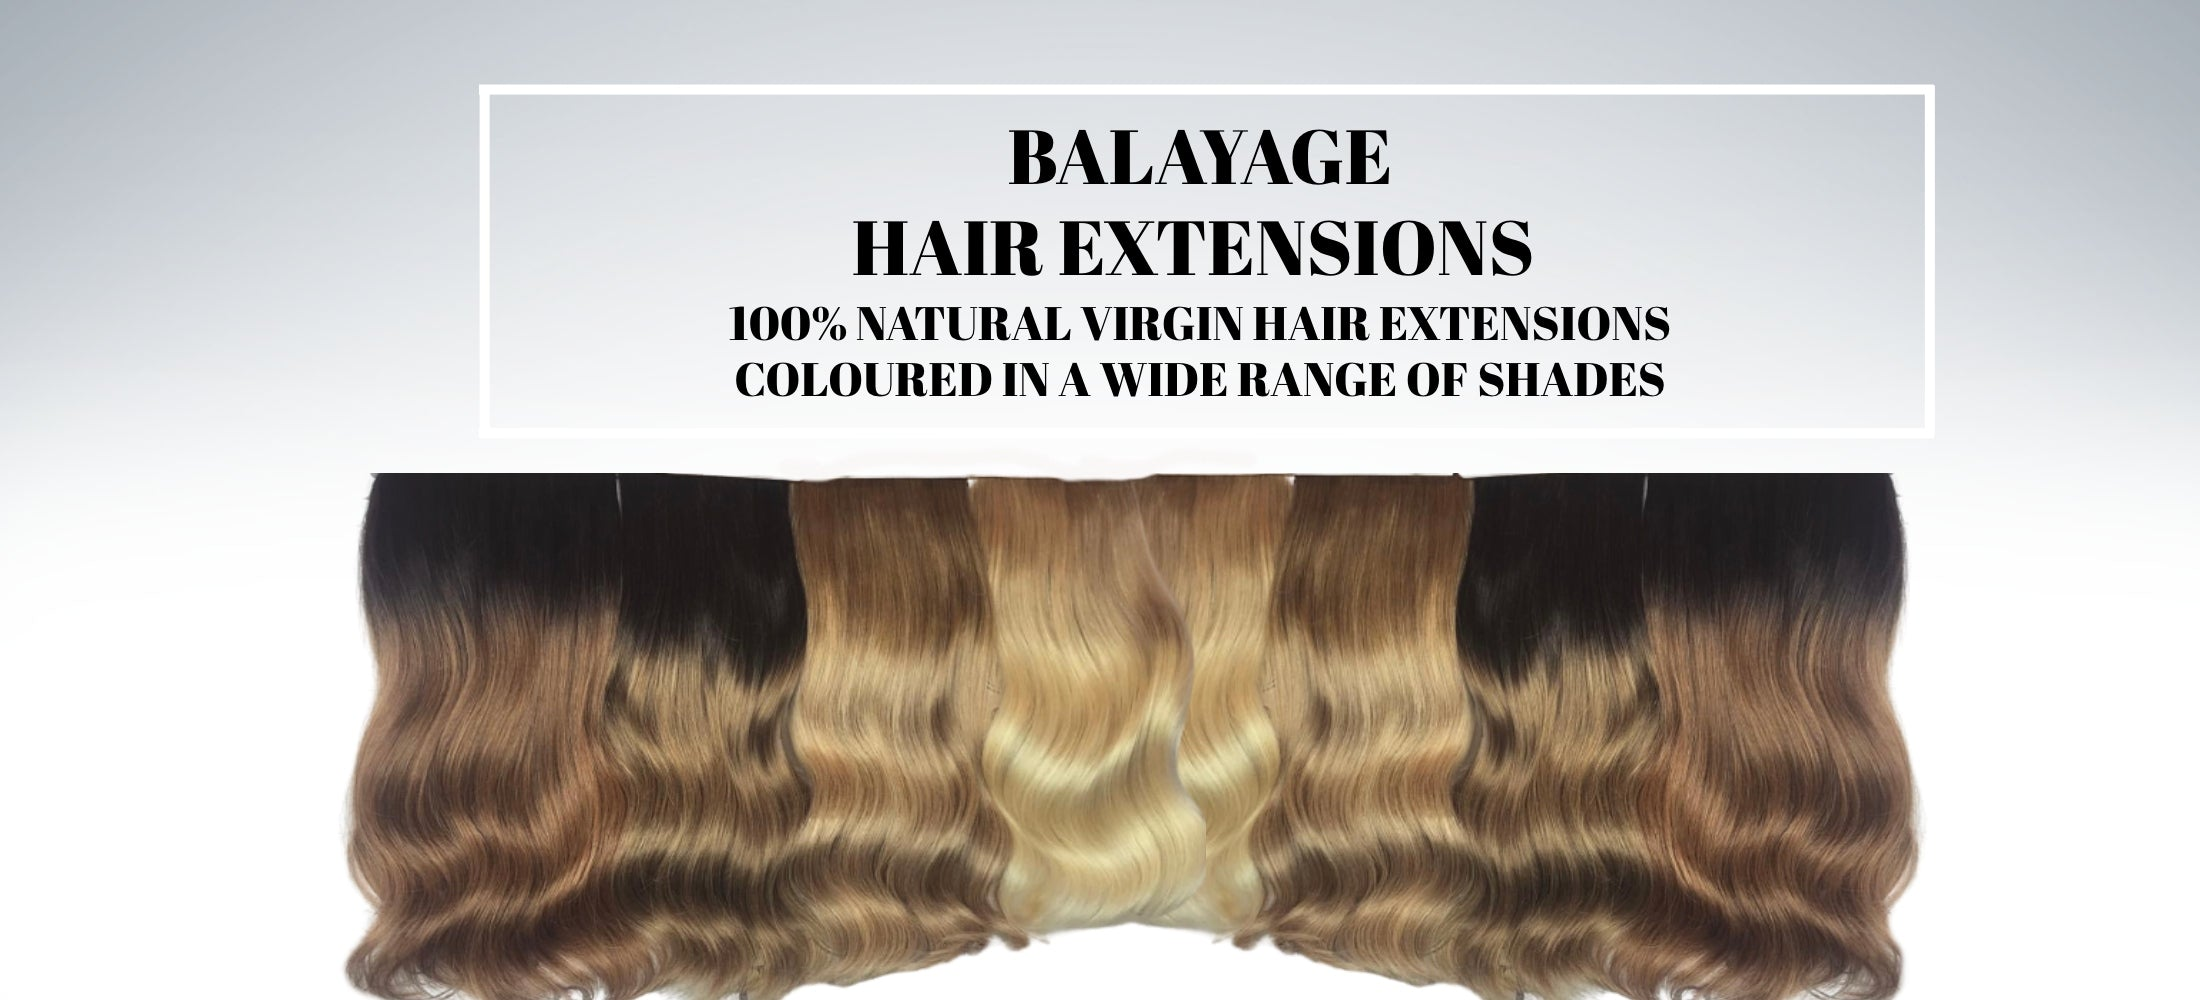 Russian Balayage Ombre Hair Extensions Australia